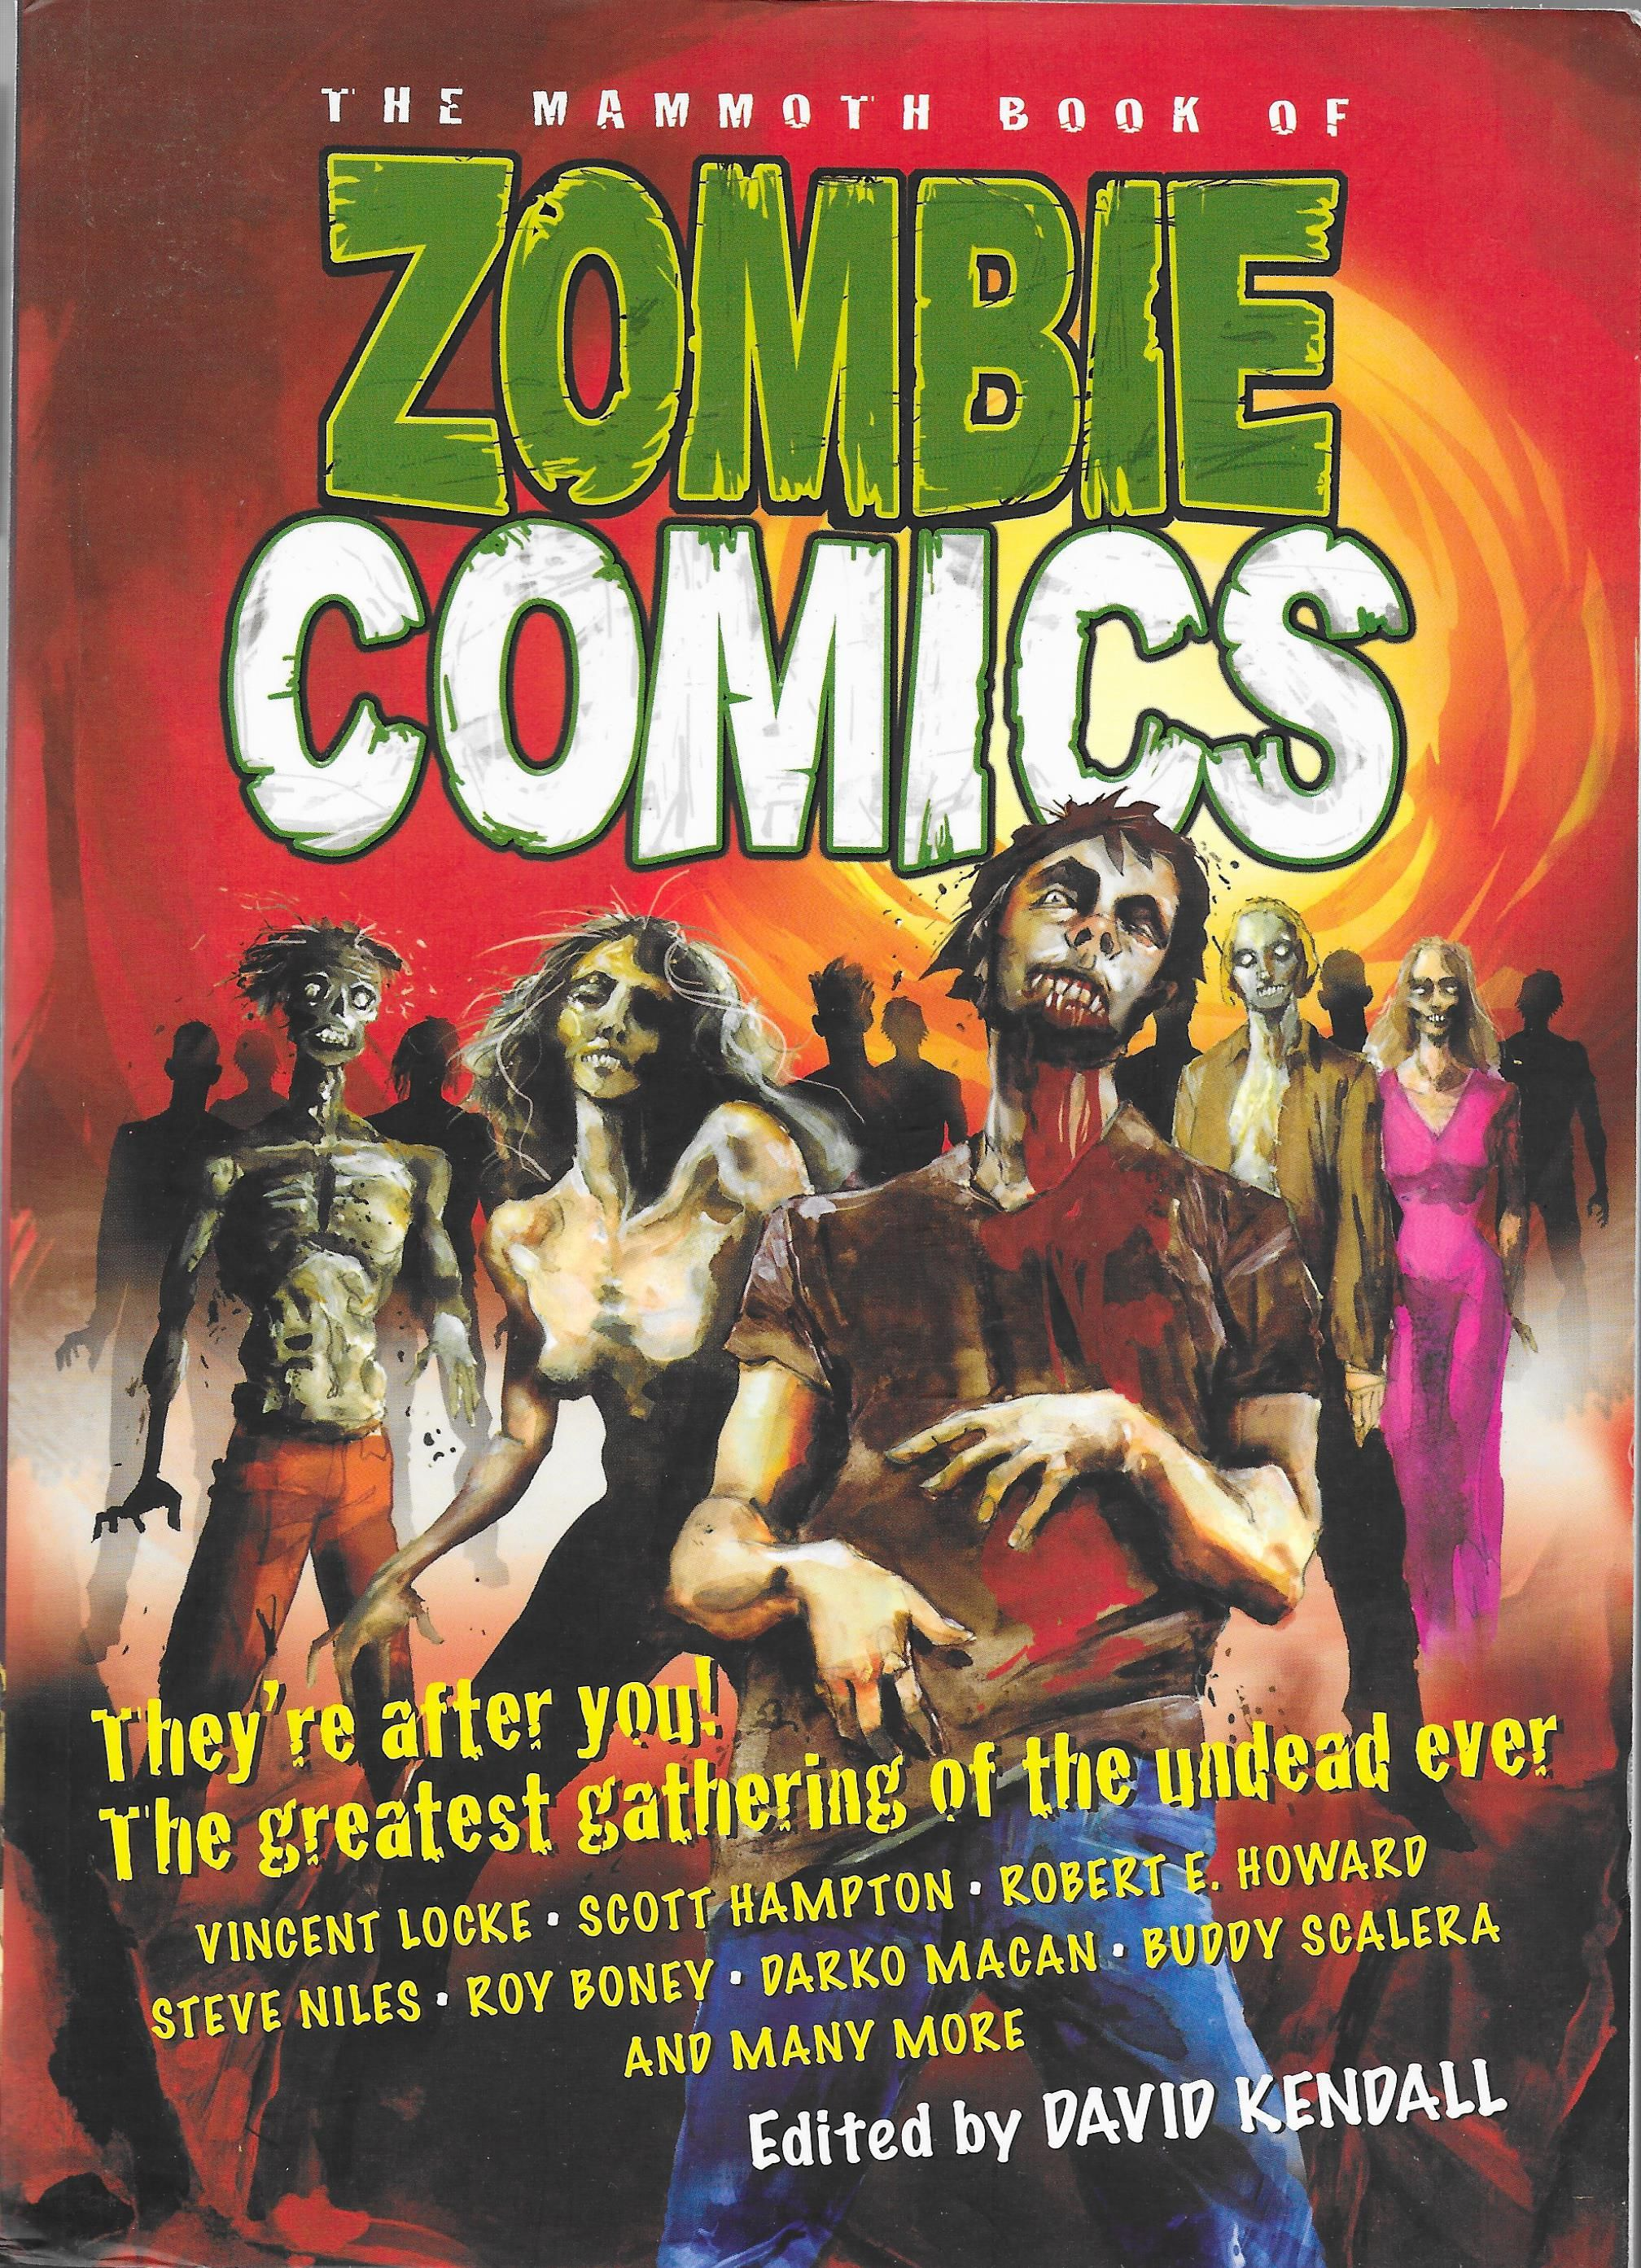 'The Mammoth Book of Zombie Comics' Edited by David